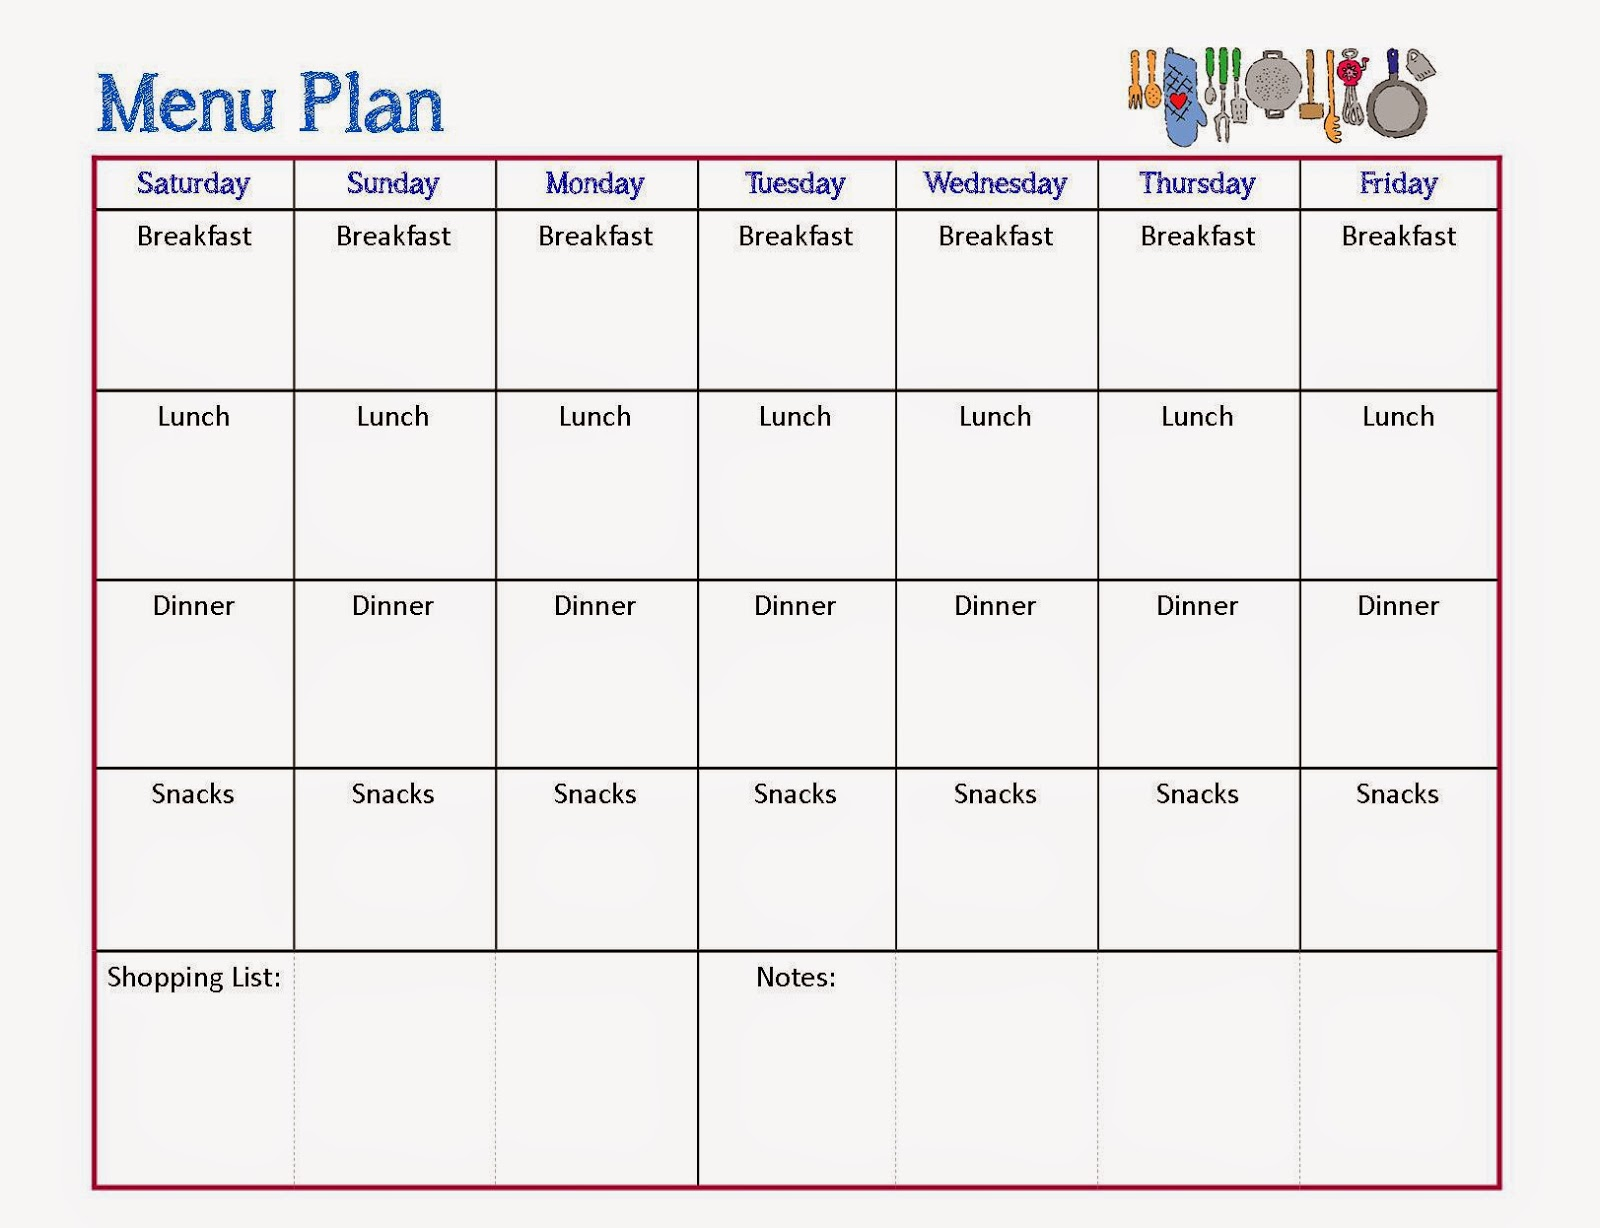 Free printable chart to organize your meal plan for the week